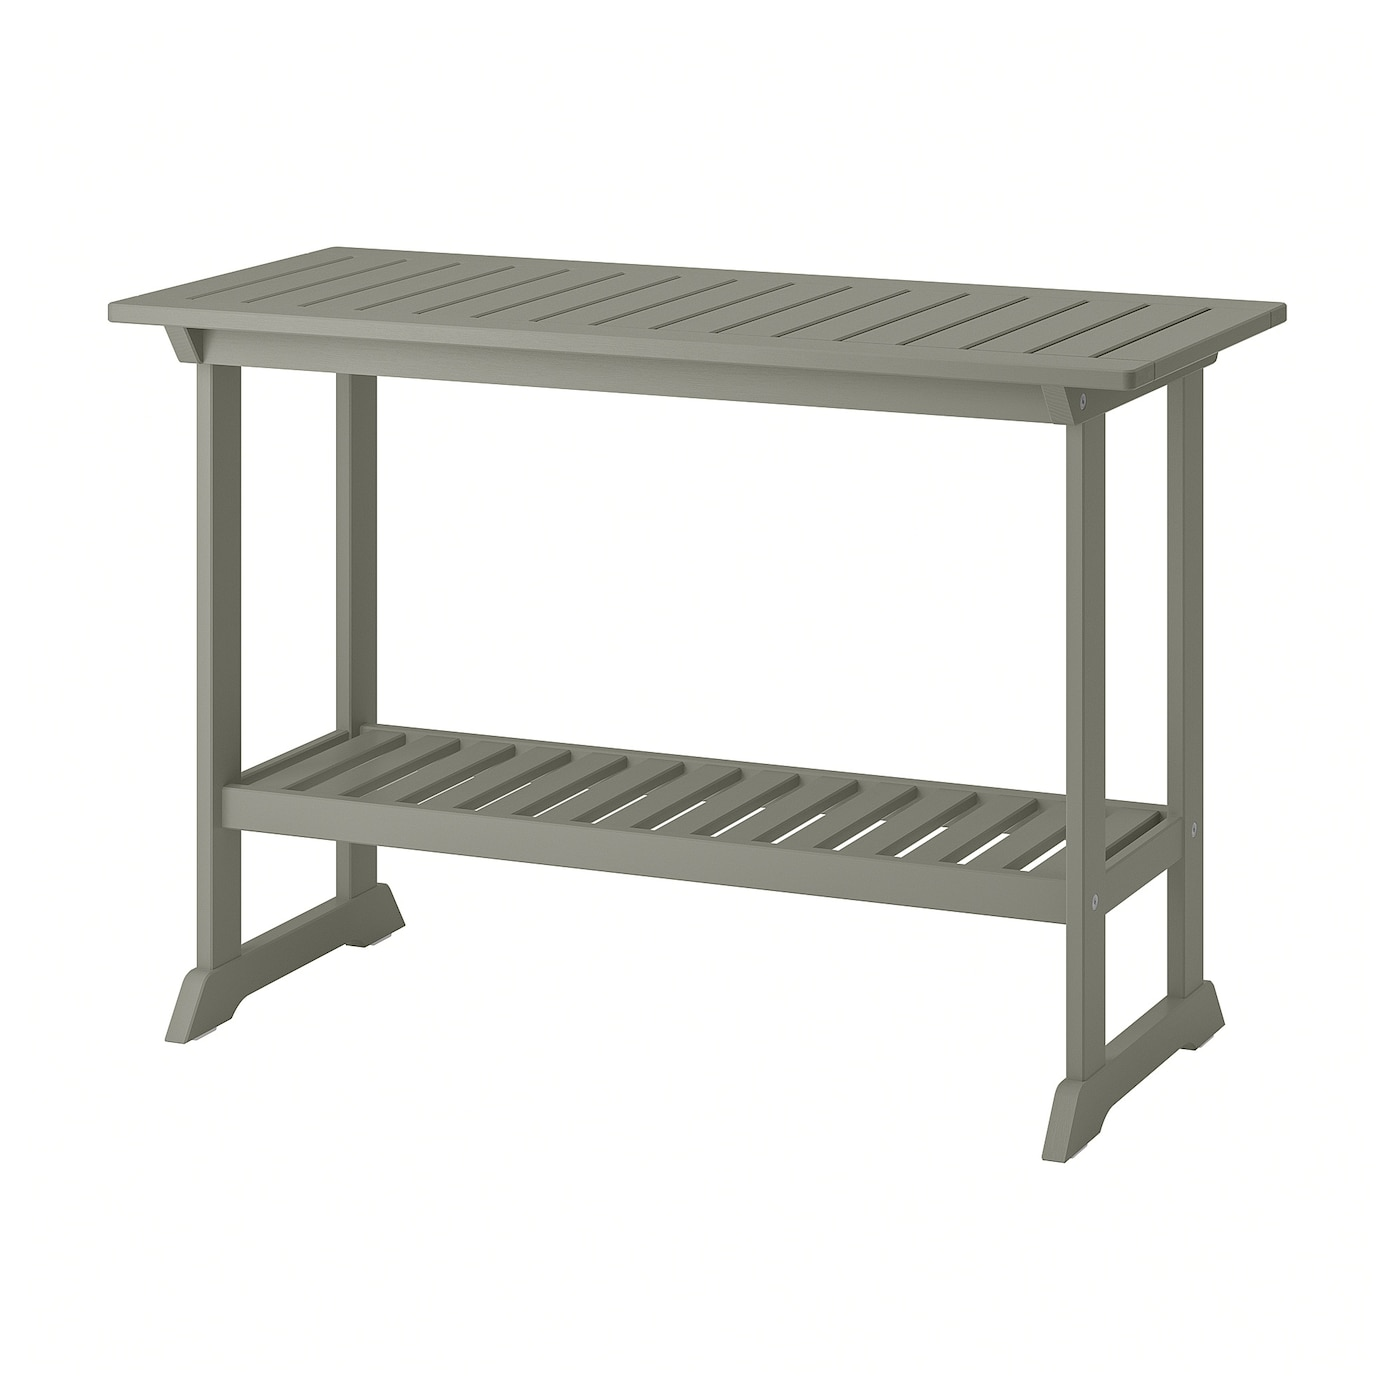 Bondholmen Console Table Outdoor Gray Stained 43 3 4x18 1 8 Ikea